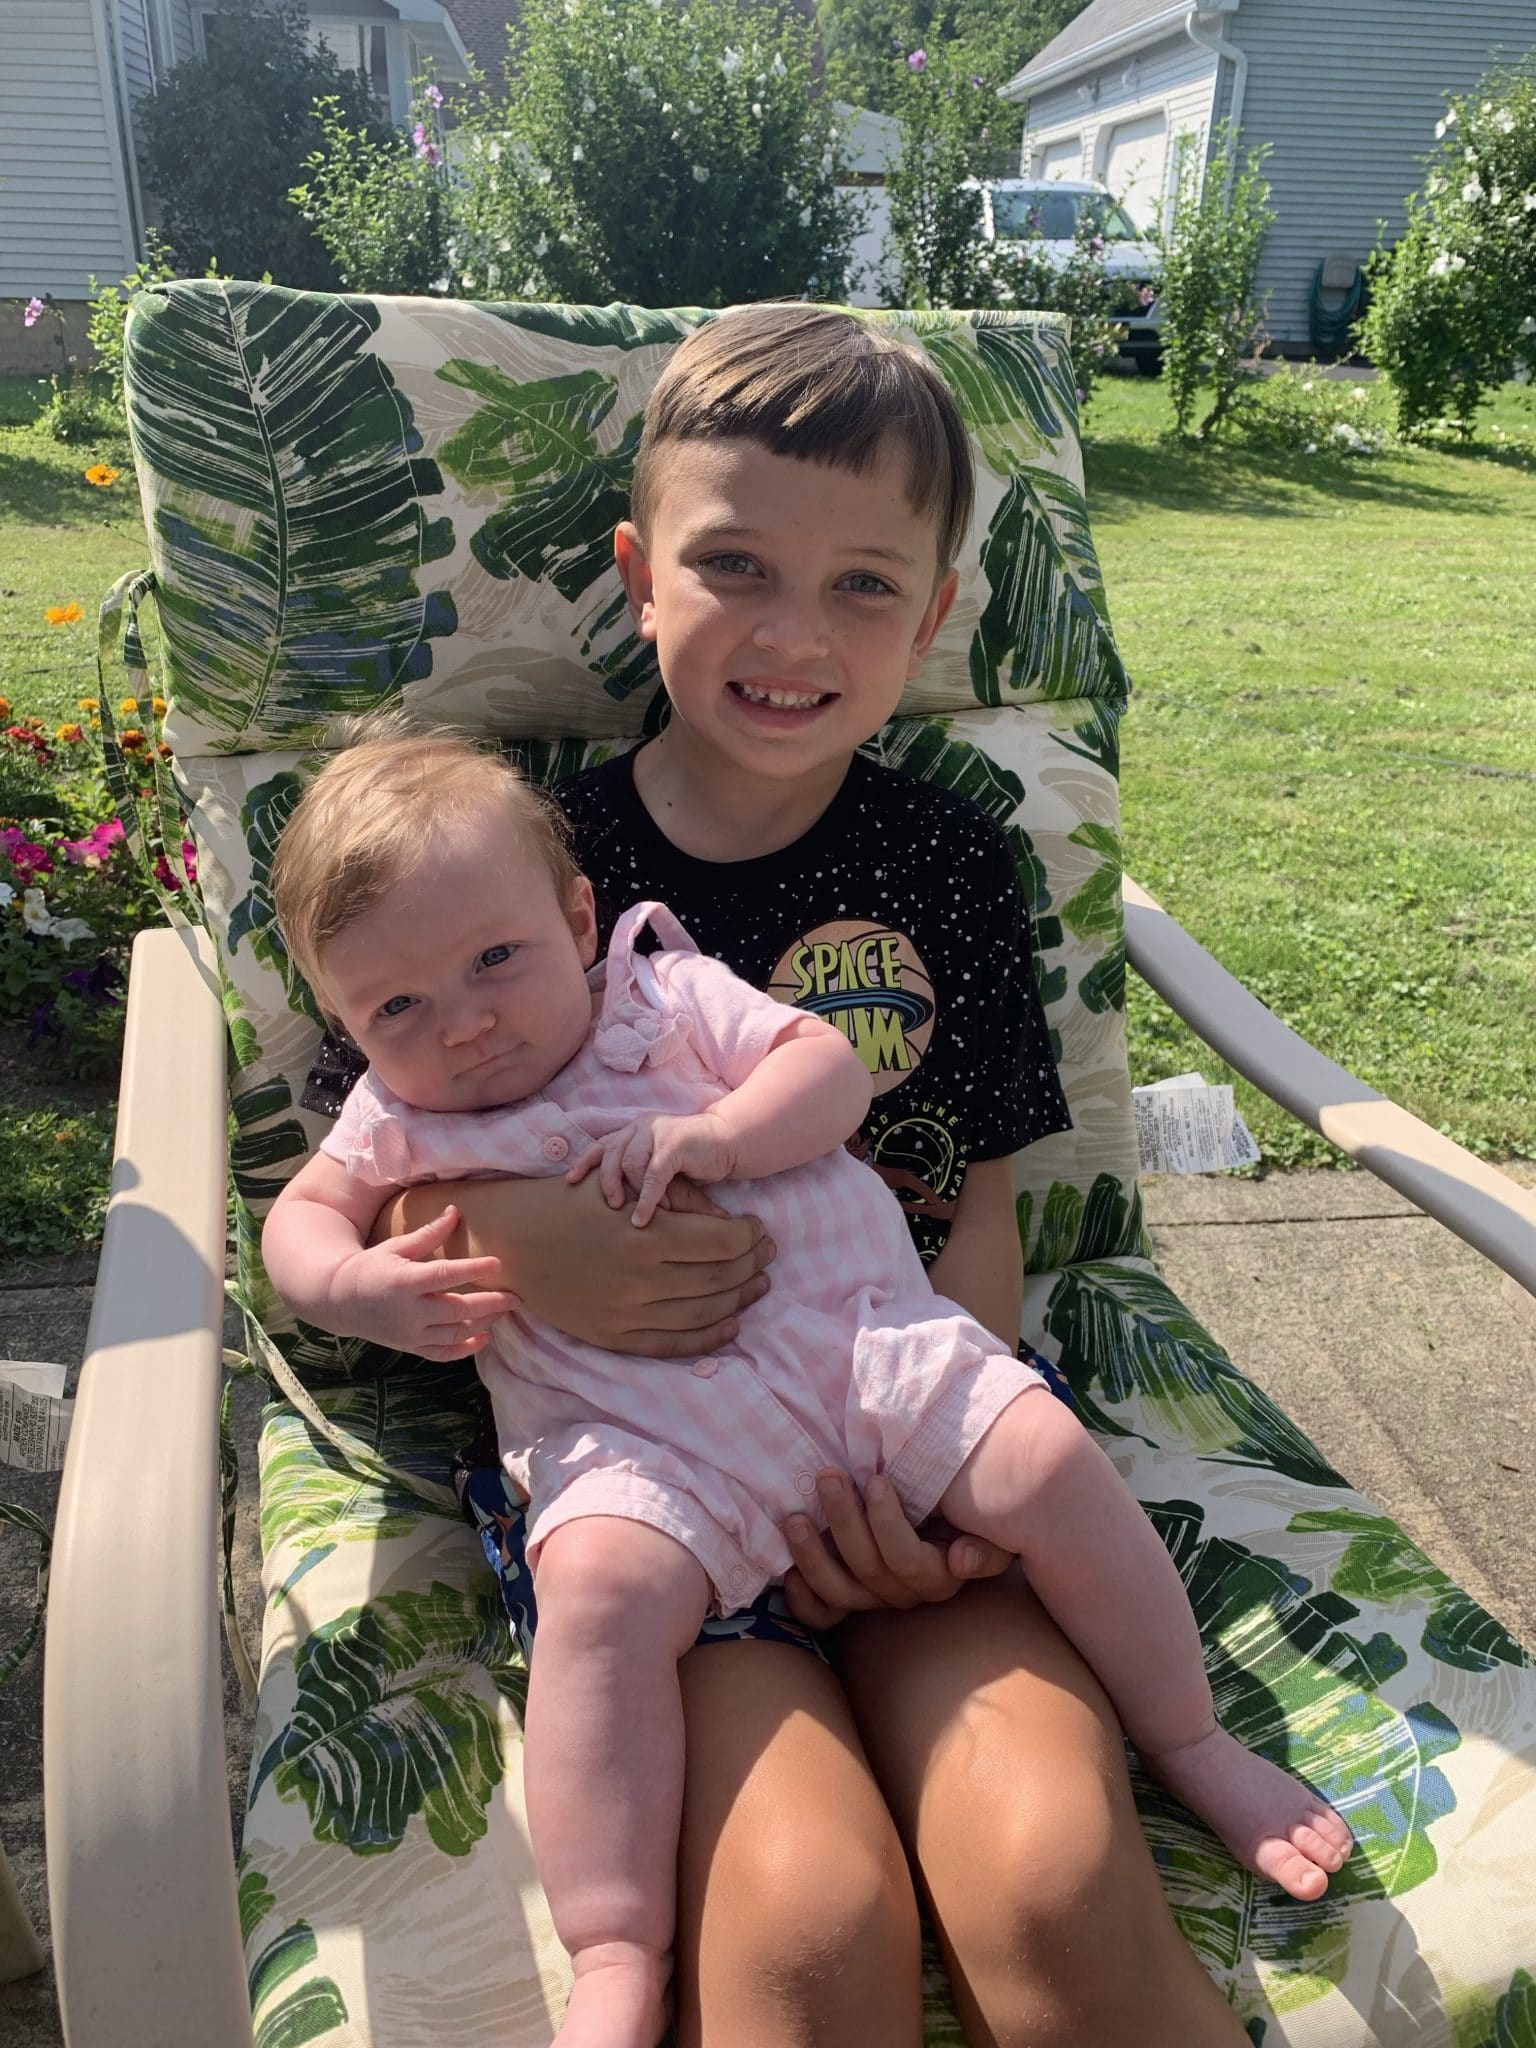 Upstate New York Summer Trip, stilettos and diapers, cousin love